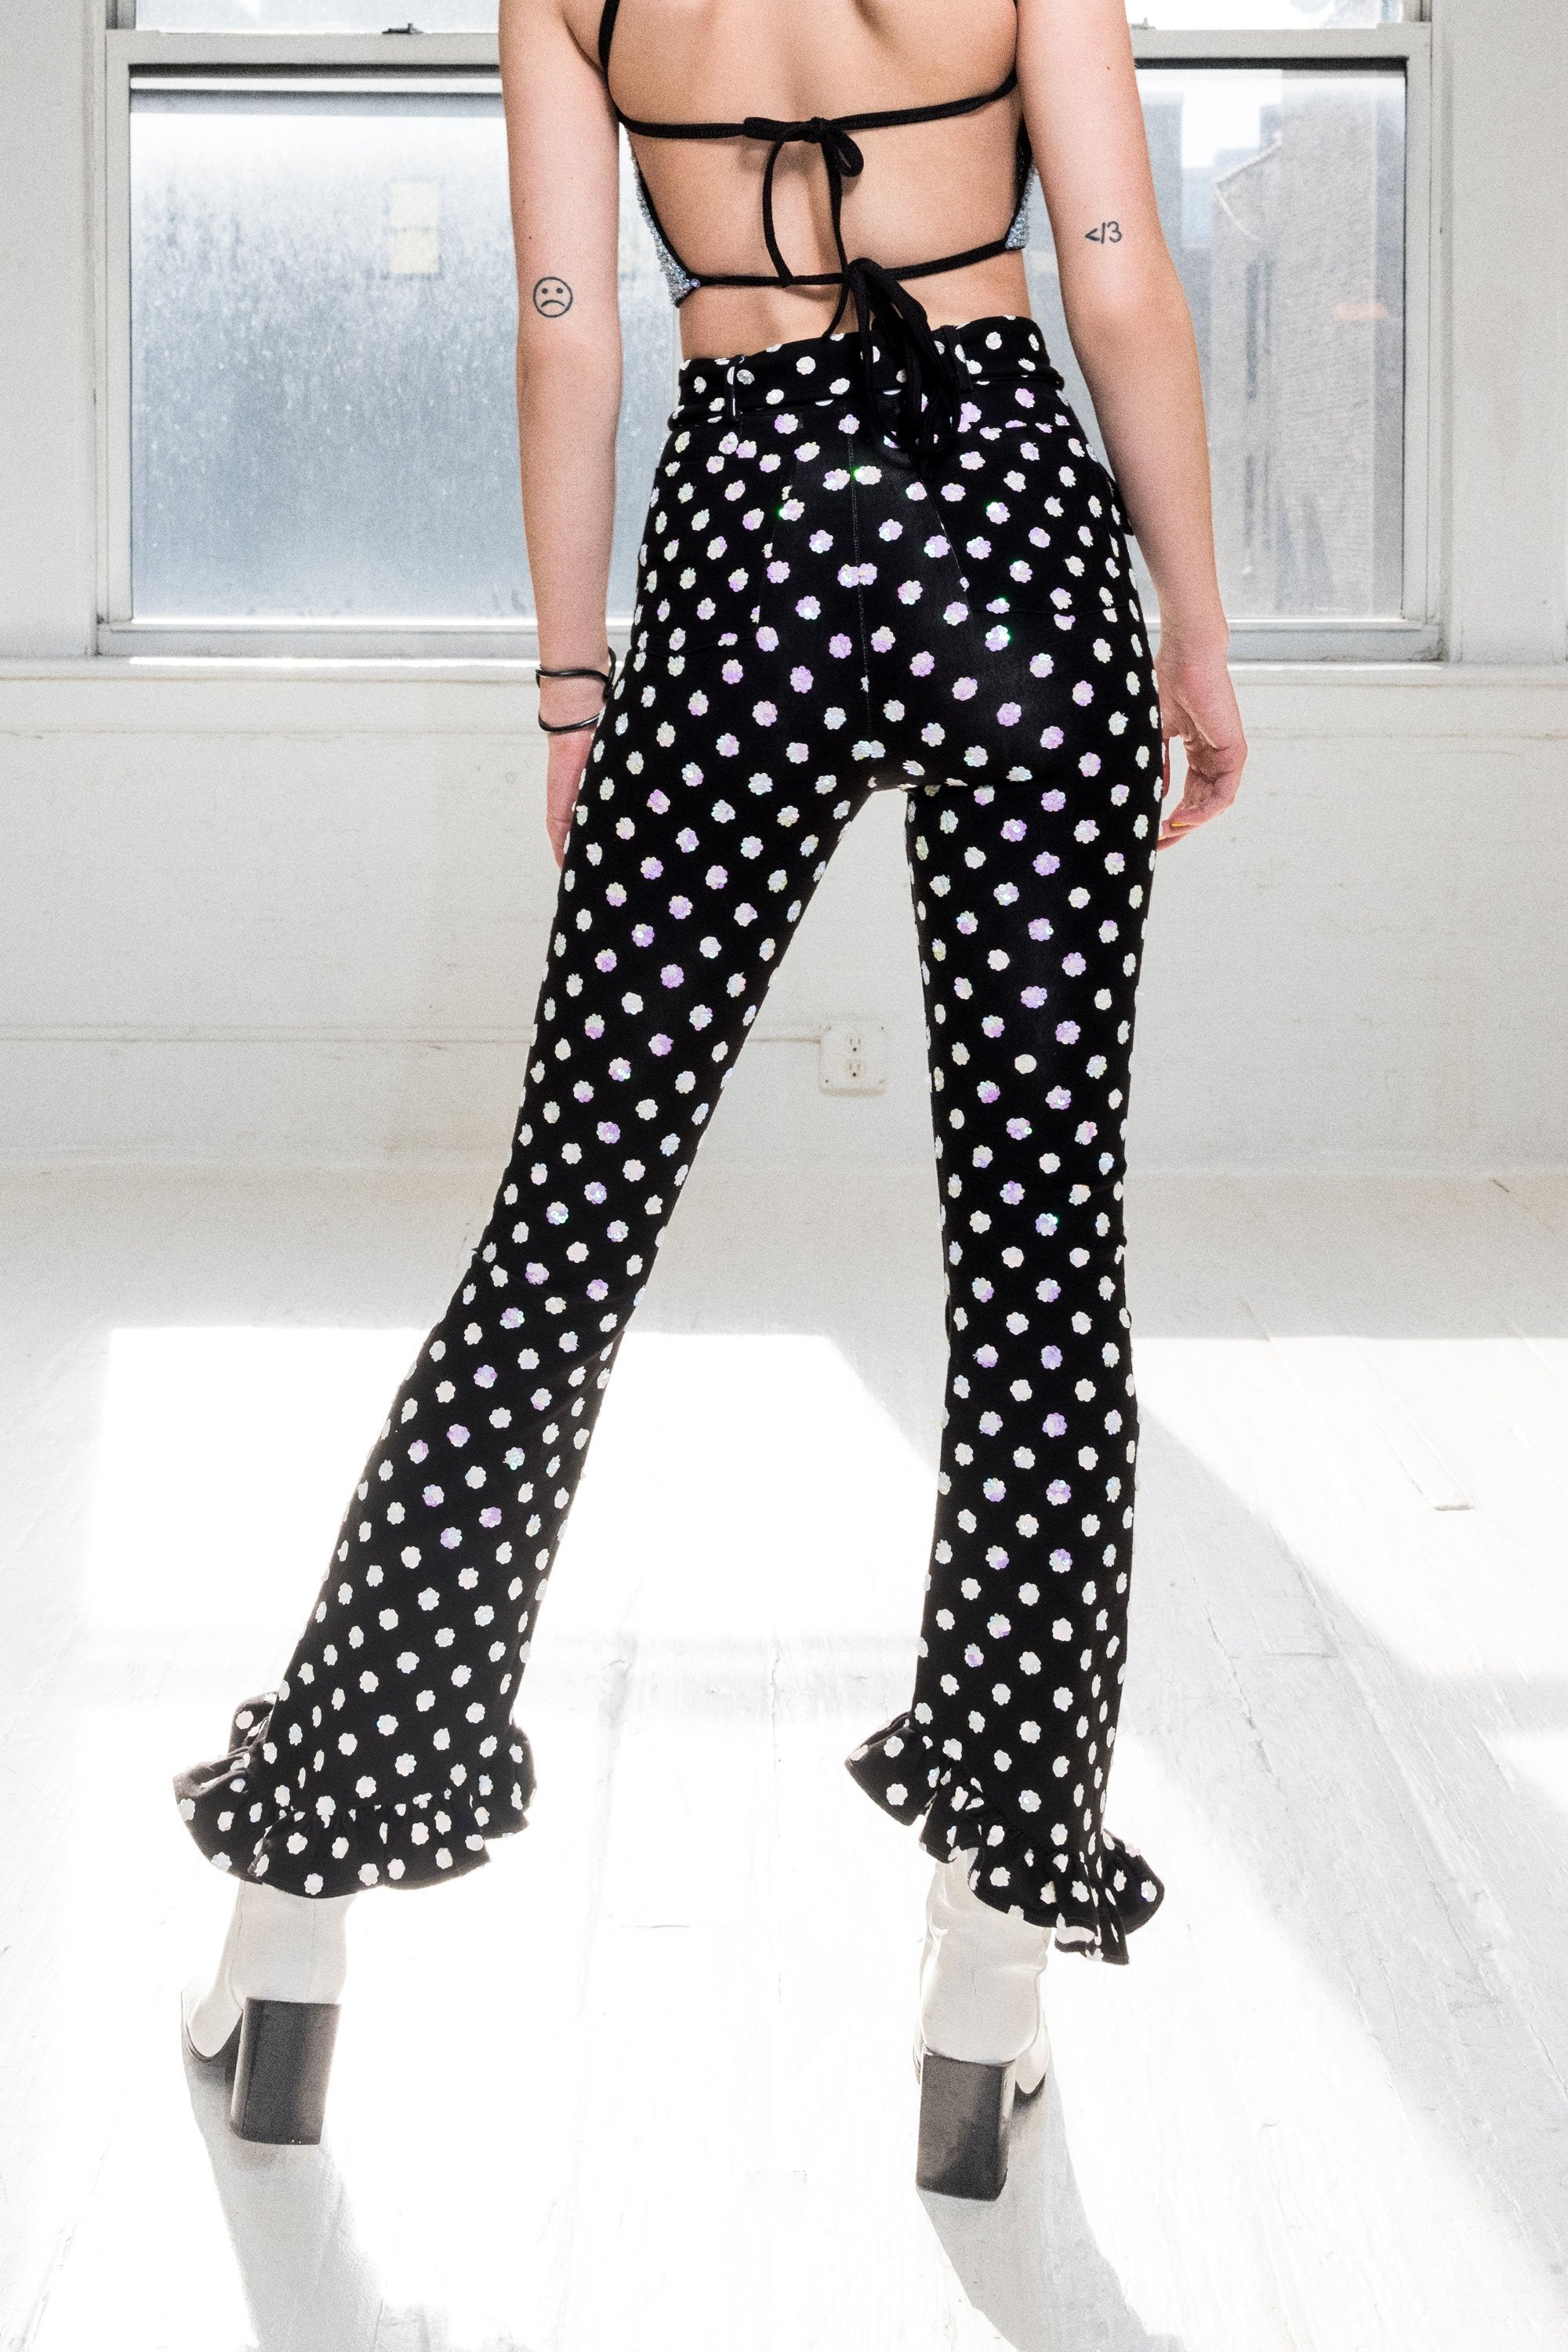 The Modern Love Sequin Pants in Black